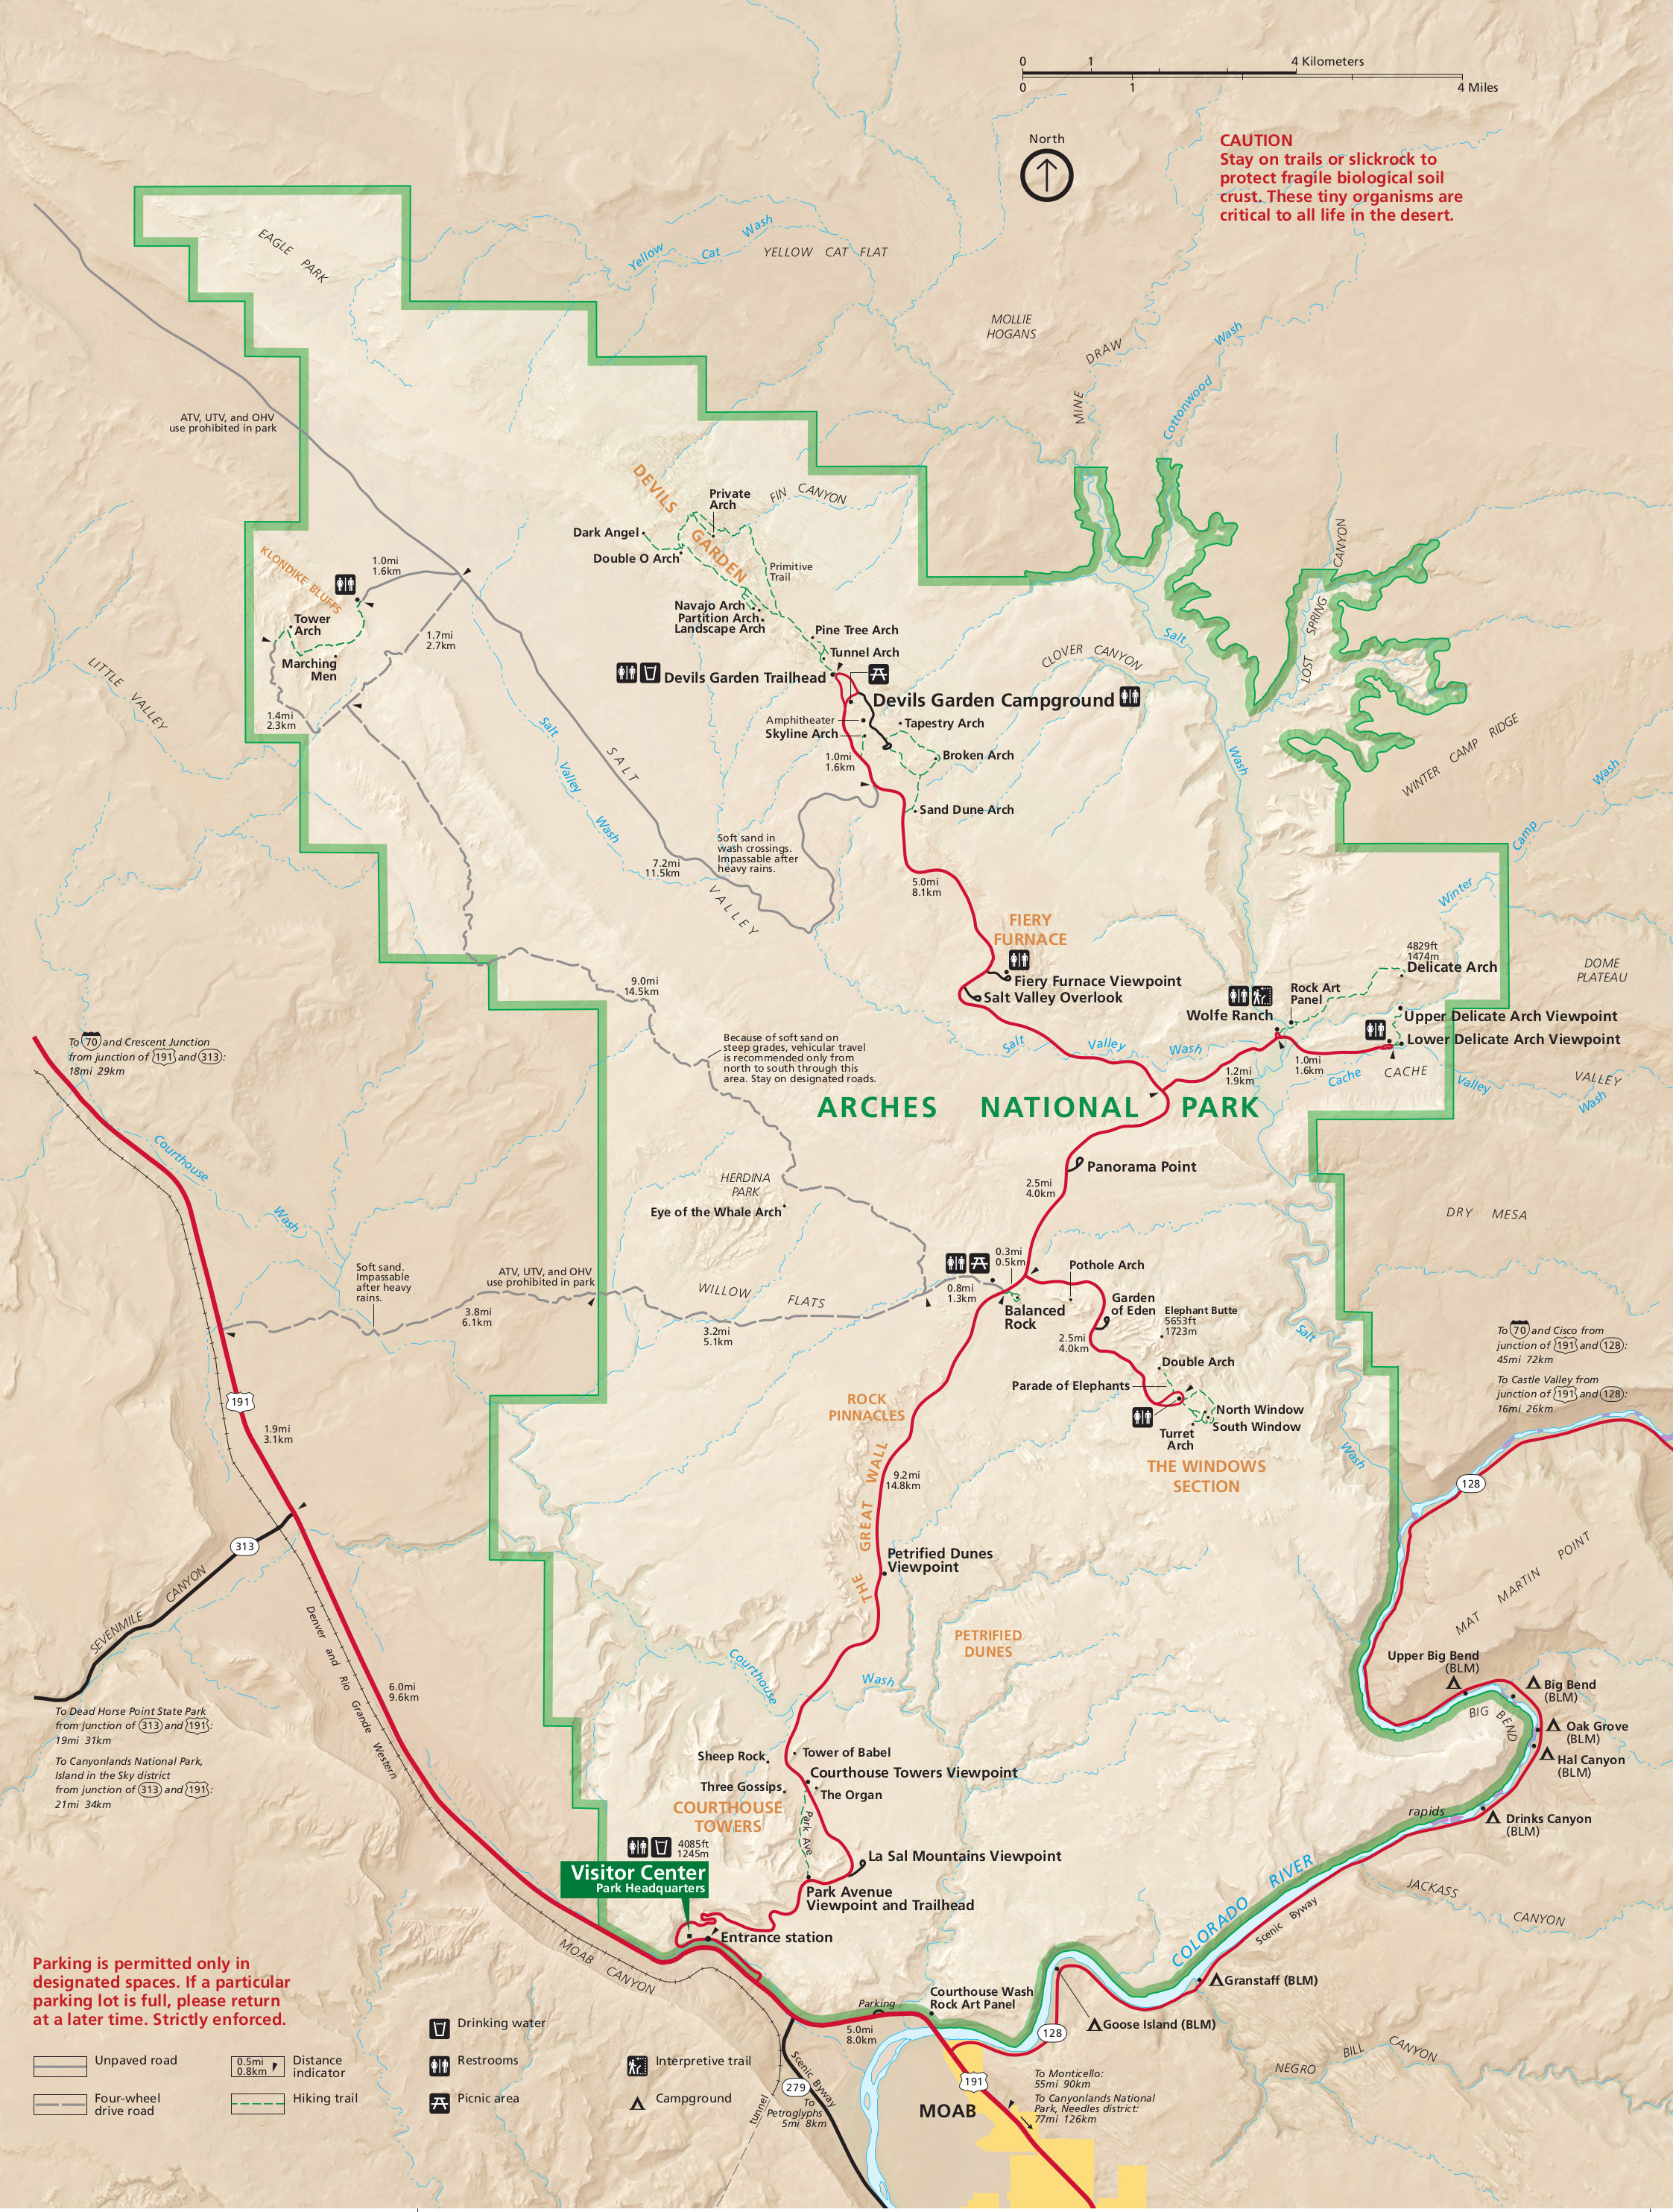 File:NPS arches-national-park-map.jpg - Wikimedia Commons